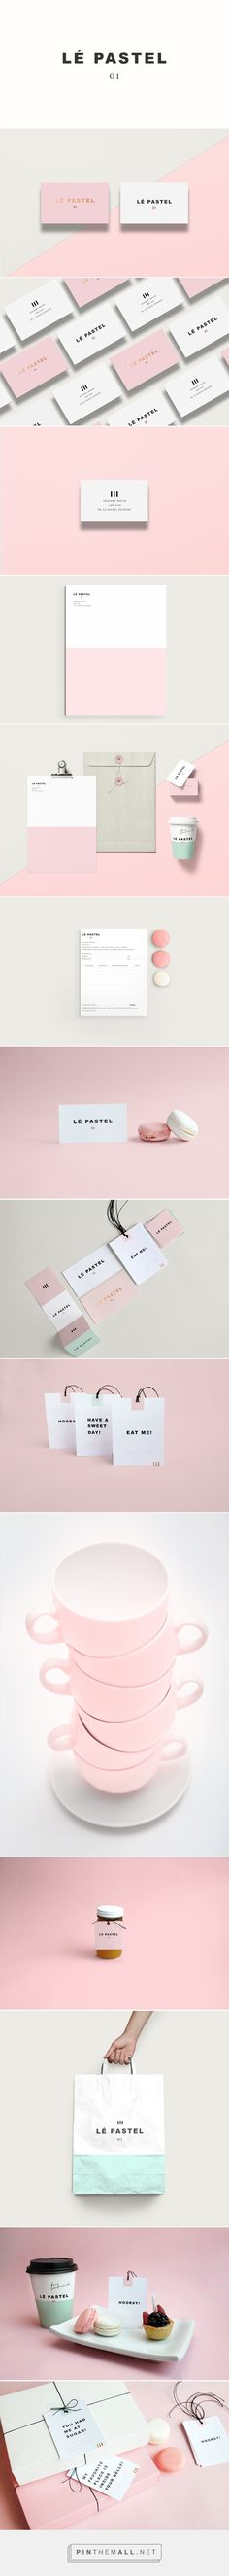 This Pin was discovered by Kaye Putnam | Branding for Entrepreneurs. Discover (and save!) your own Pins on Pinterest.